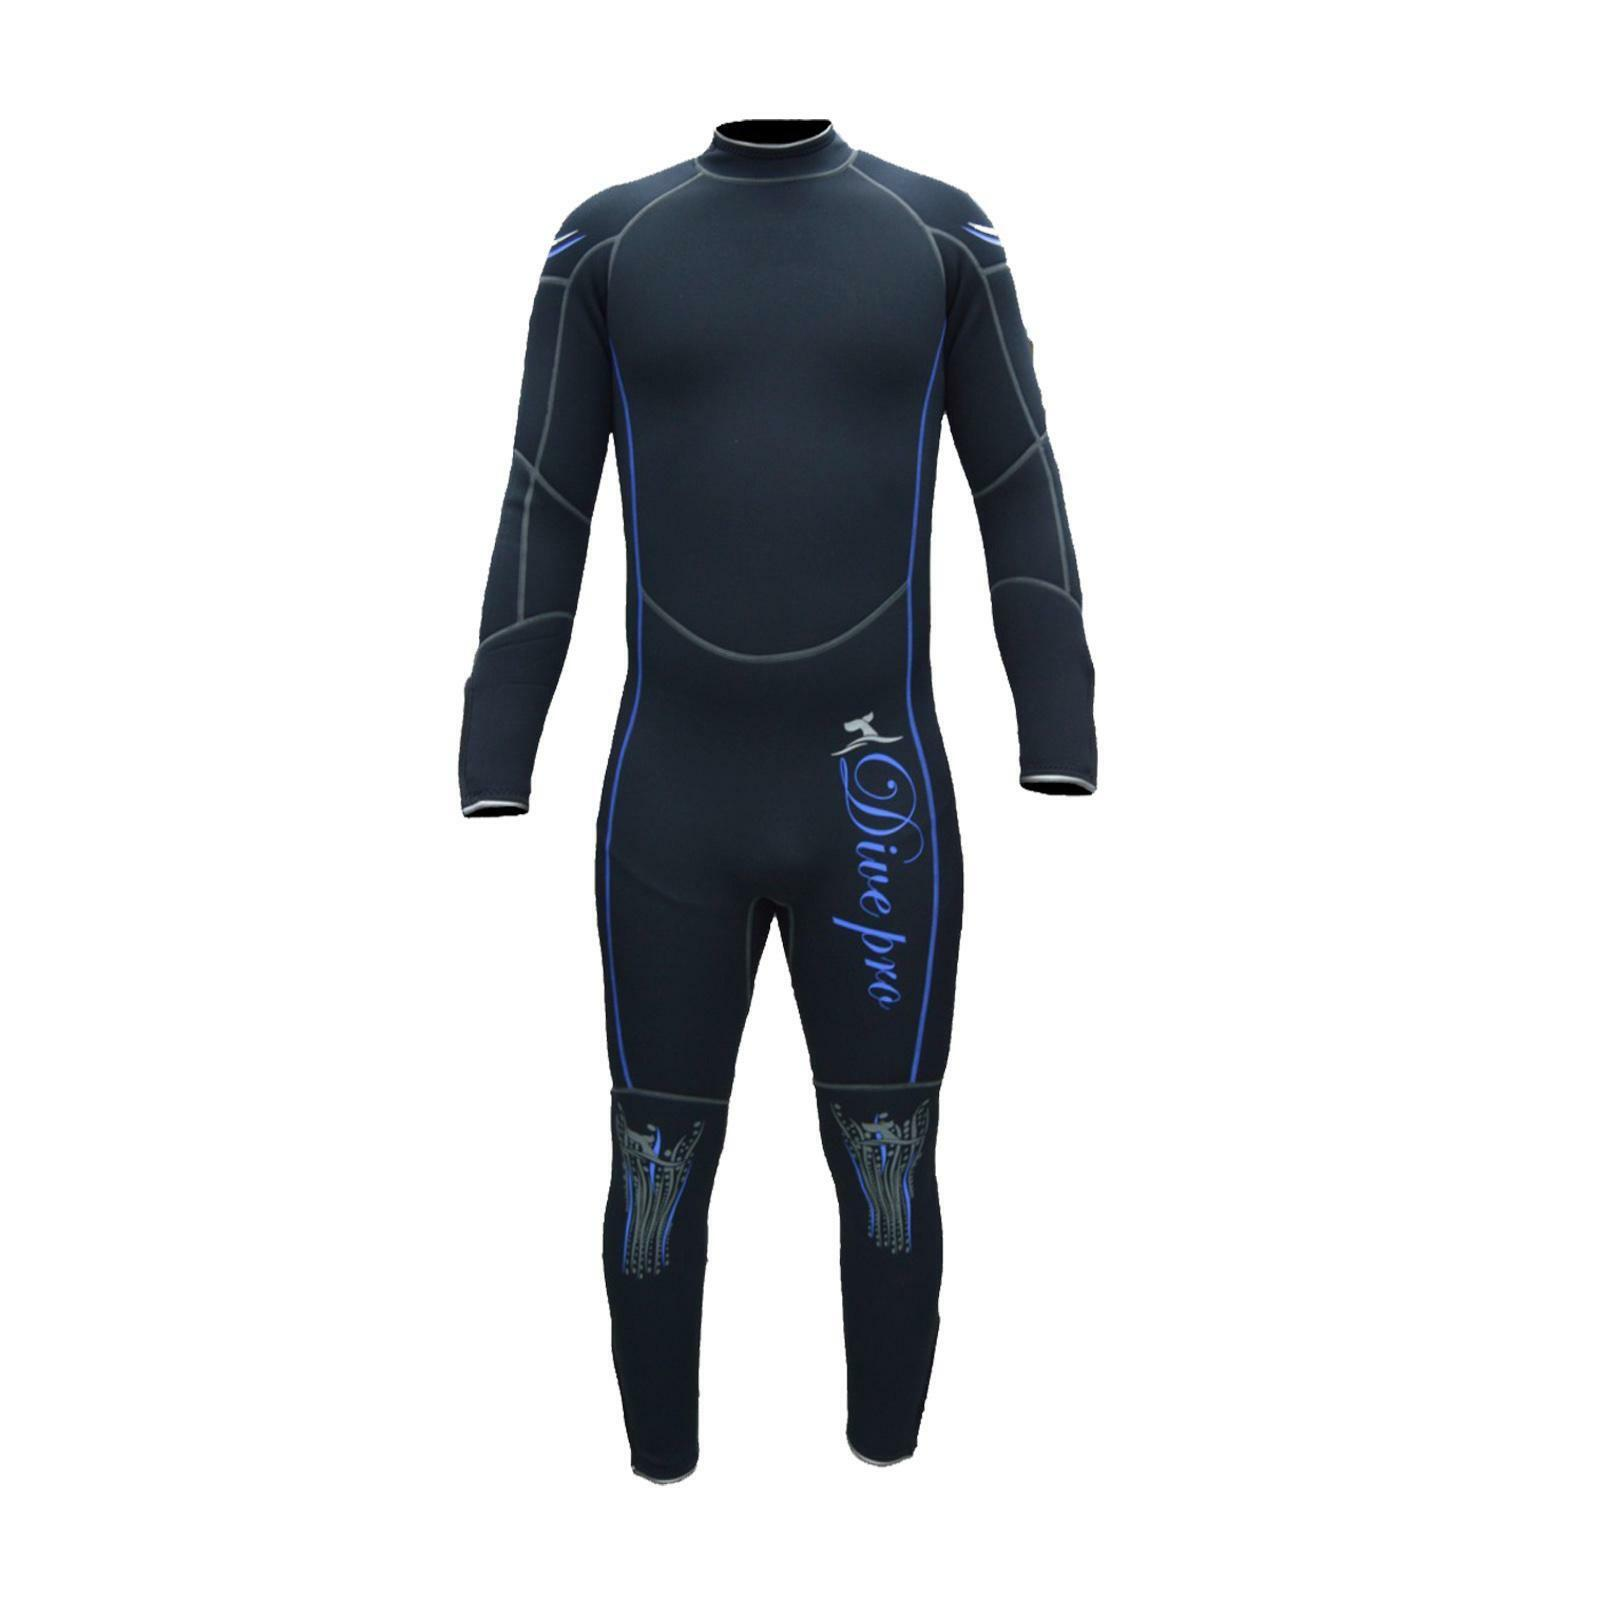 Divepro Coral 3mm -  Tropical (Men's)  at the lowest price